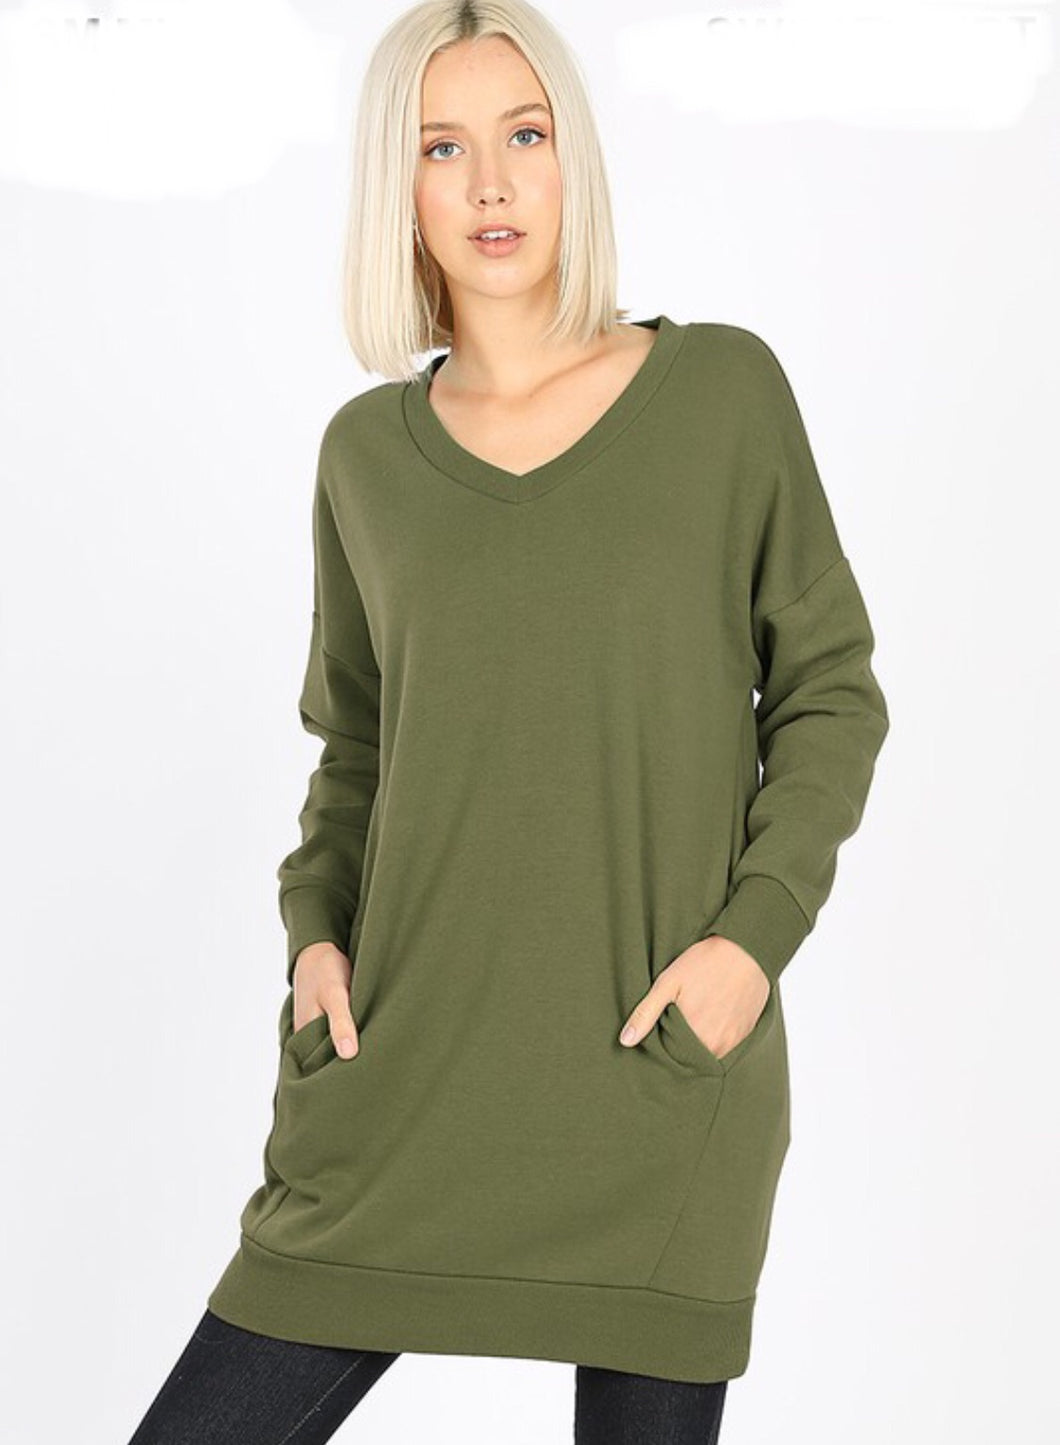 Warm and Cozy V-neck Shirt